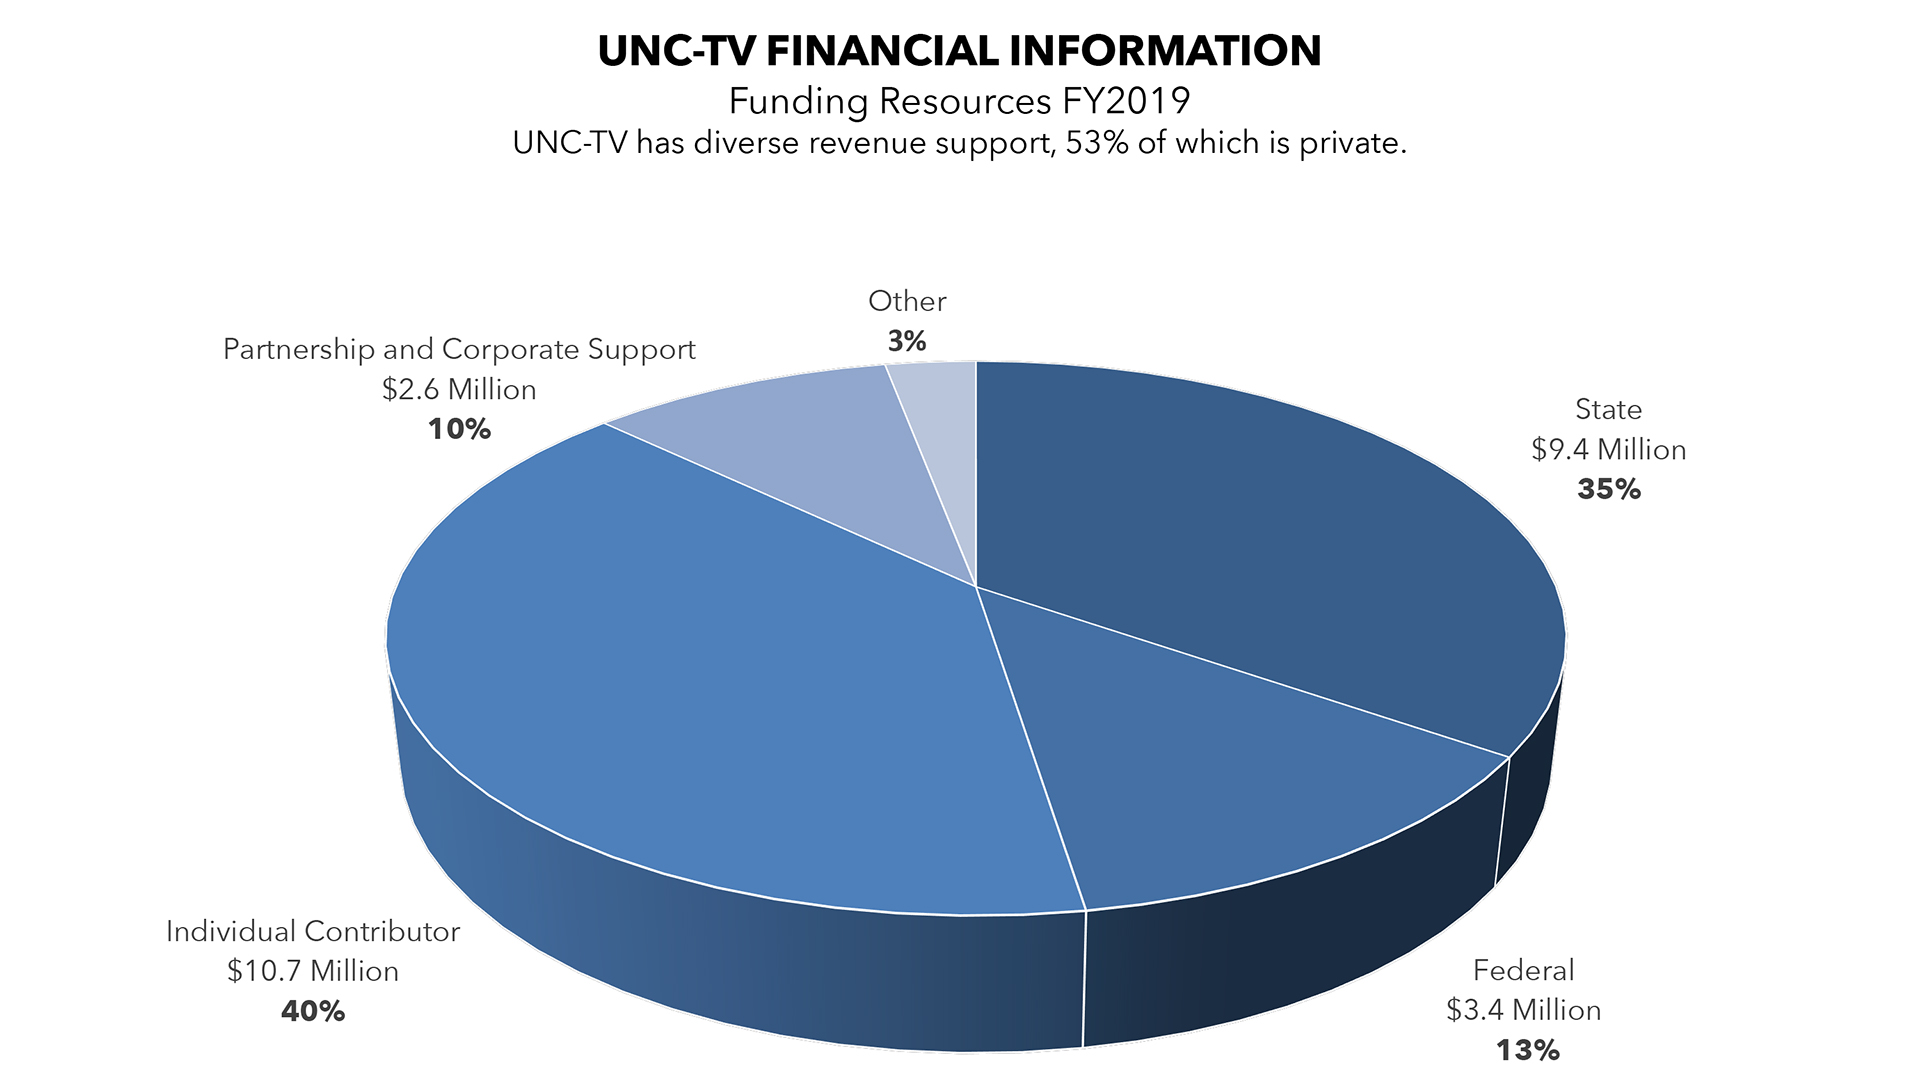 Pie chart of Funding Resources for FY2017: UNC-TV has diverse revenue support, 53% of which is private.